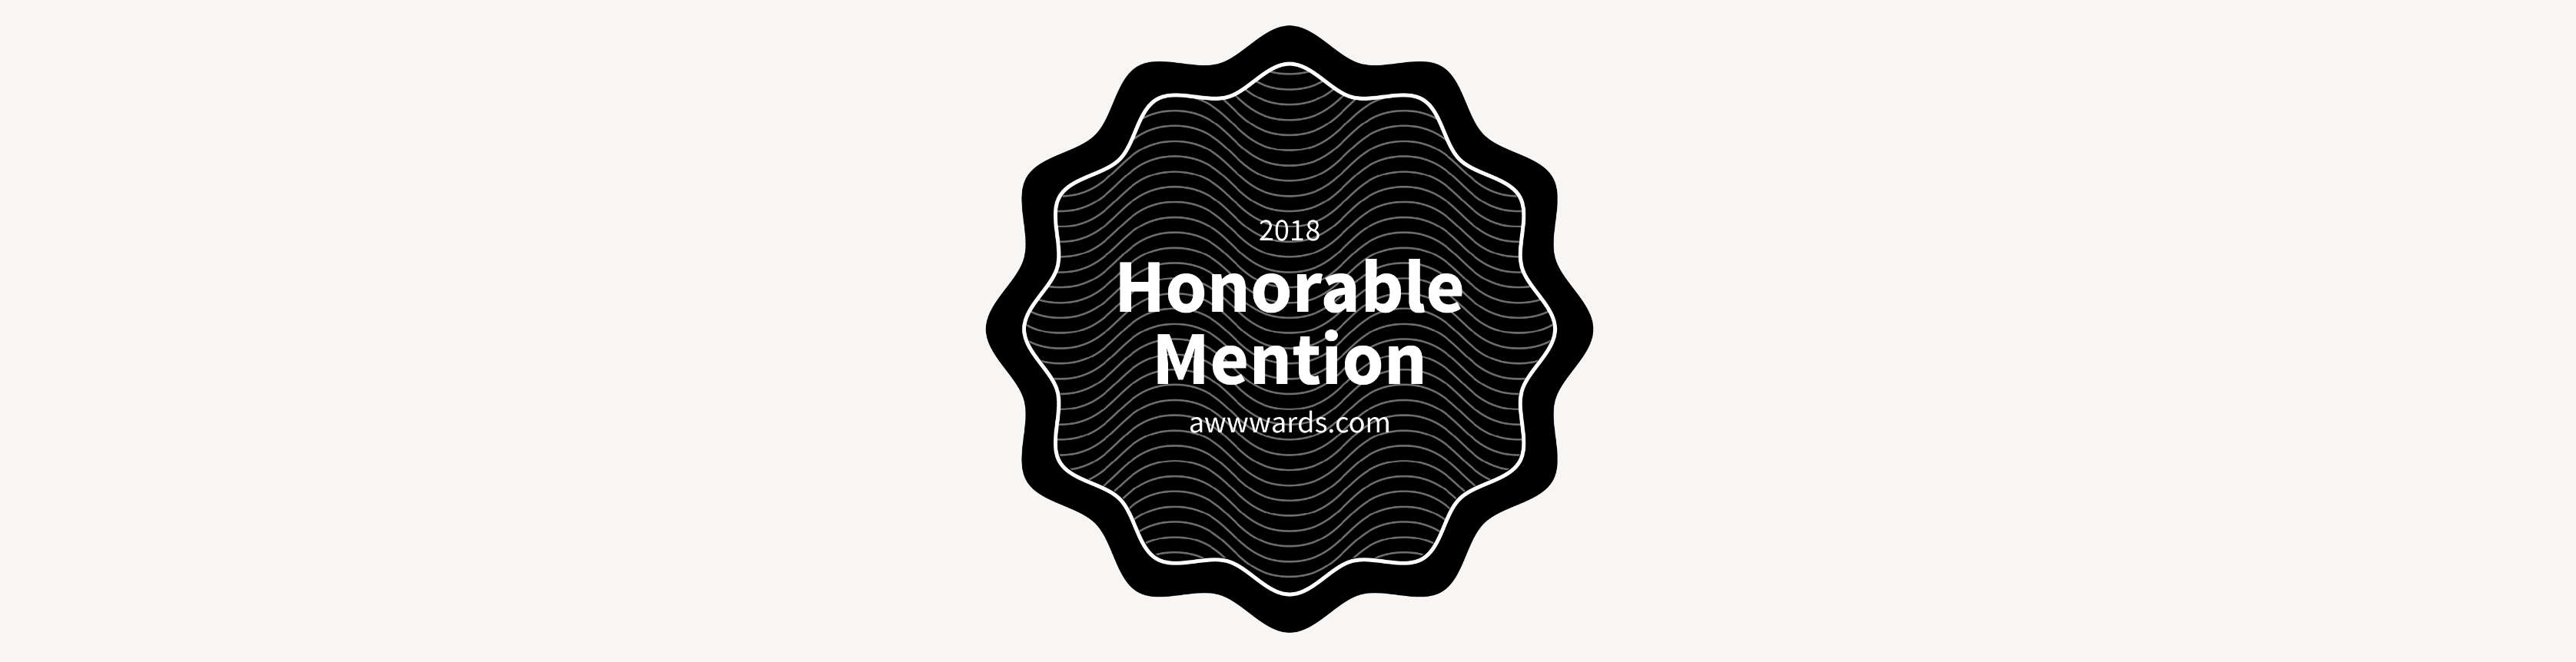 Honorable Mention award badge from Awwwards .com.